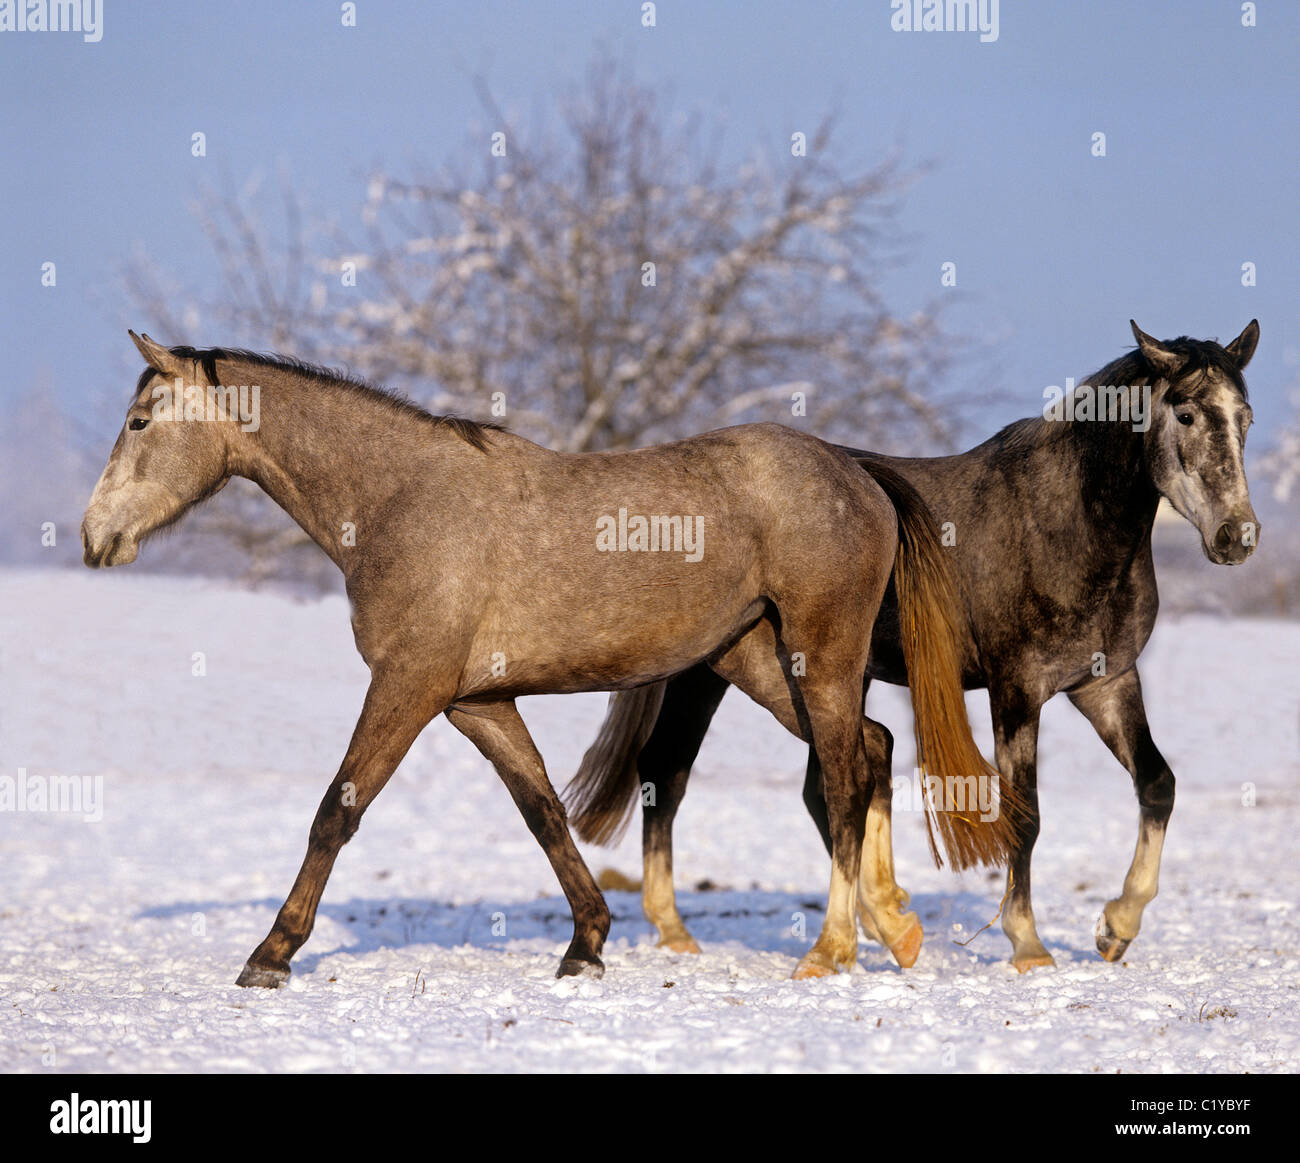 two Oldenburg horses in snow - Stock Image